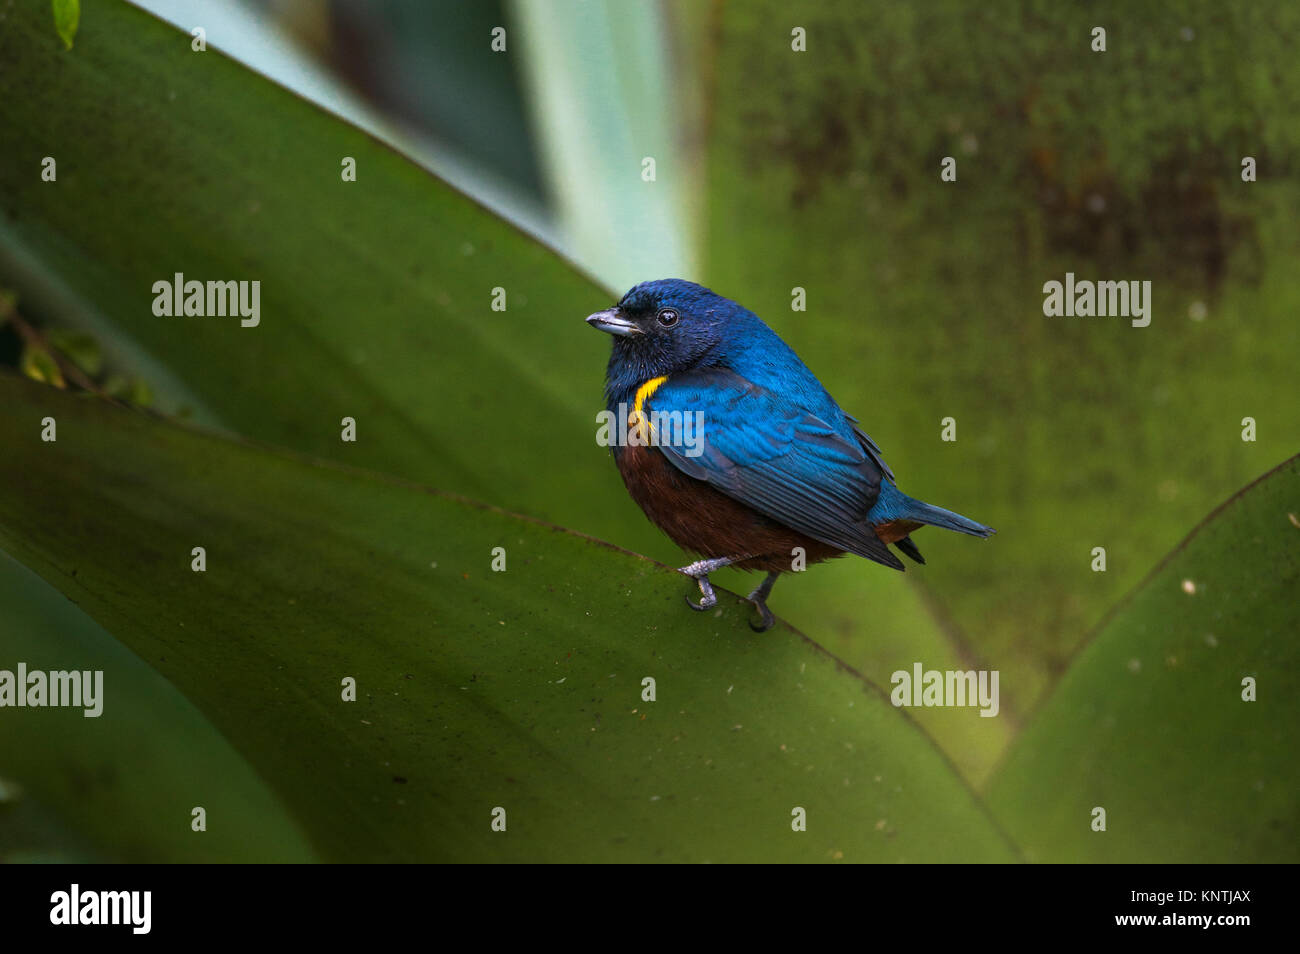 A Chestnut-bellied Euphonia perched on a large bromeliad from the Atlantic Rainforest of SE Brazil - Stock Image